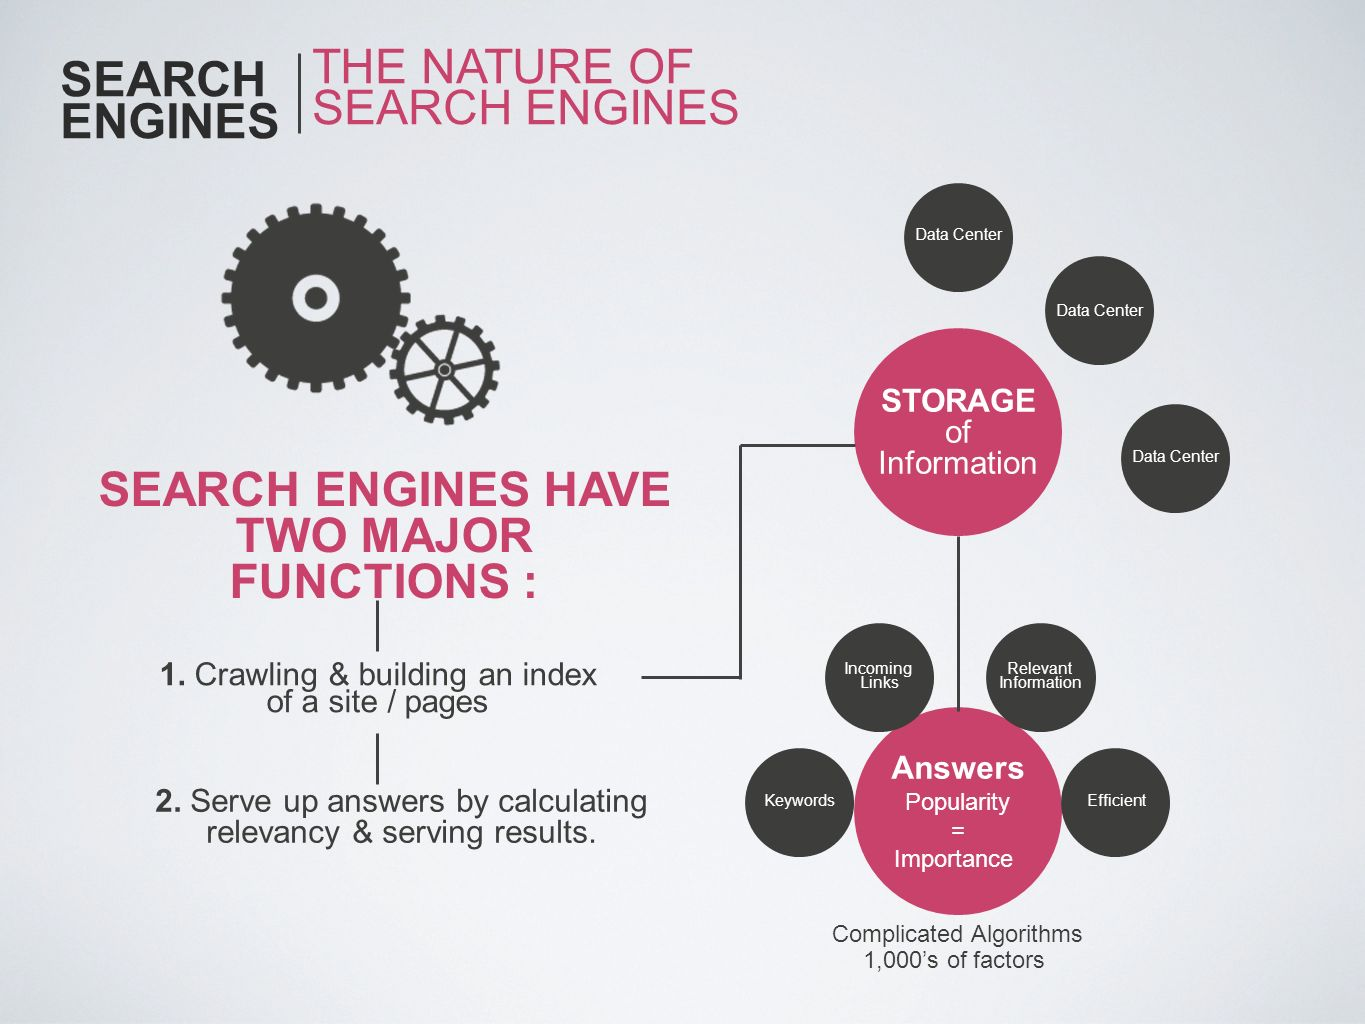 SEARCH ENGINES HAVE TWO MAJOR FUNCTIONS :